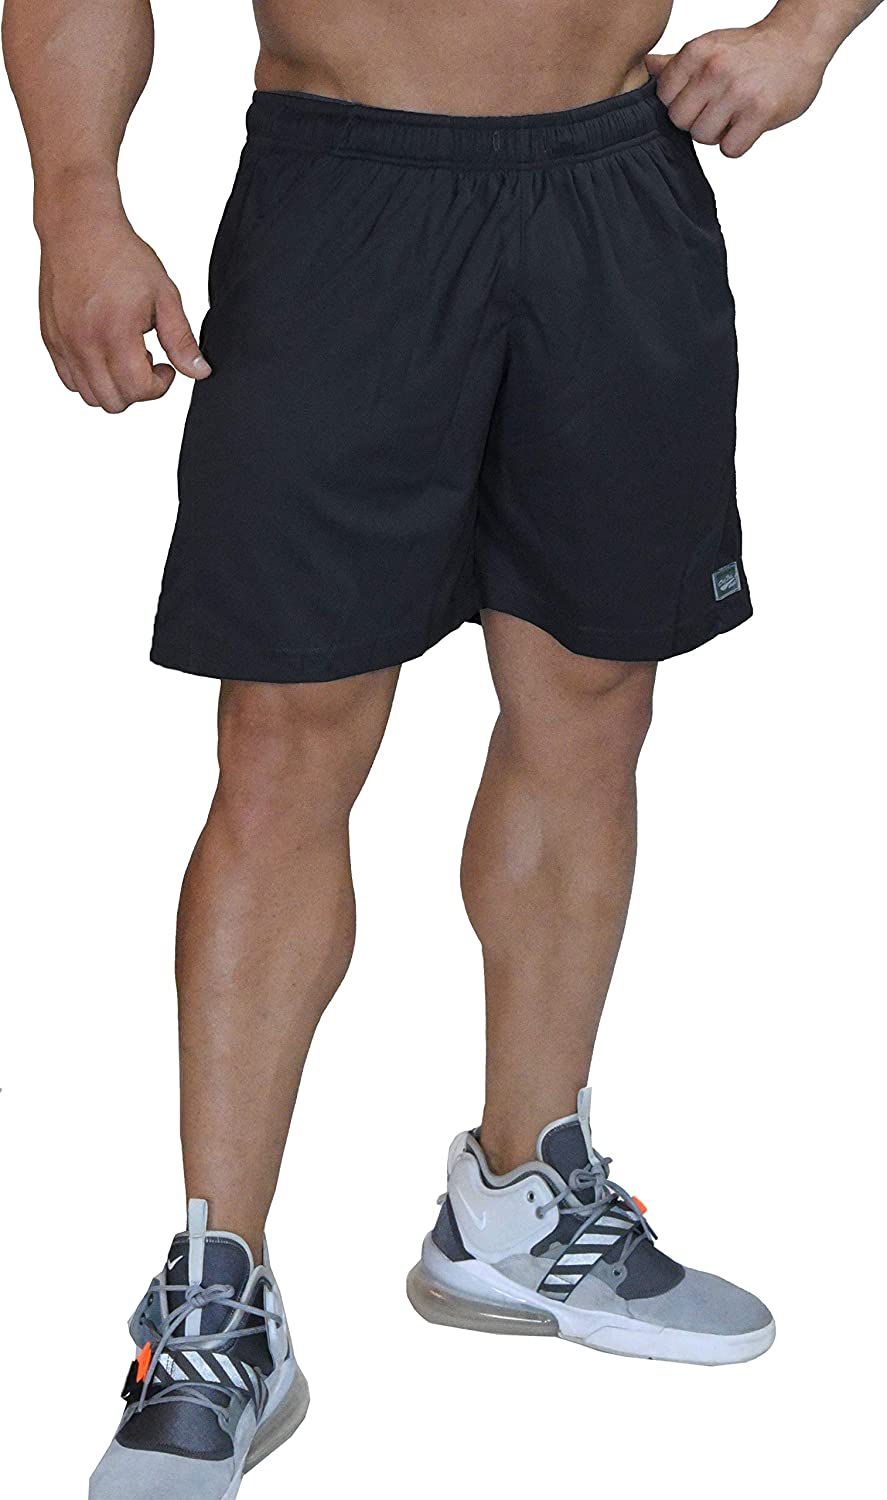 Relaxed Fit Black Microfiber Dri-Fit Shorts